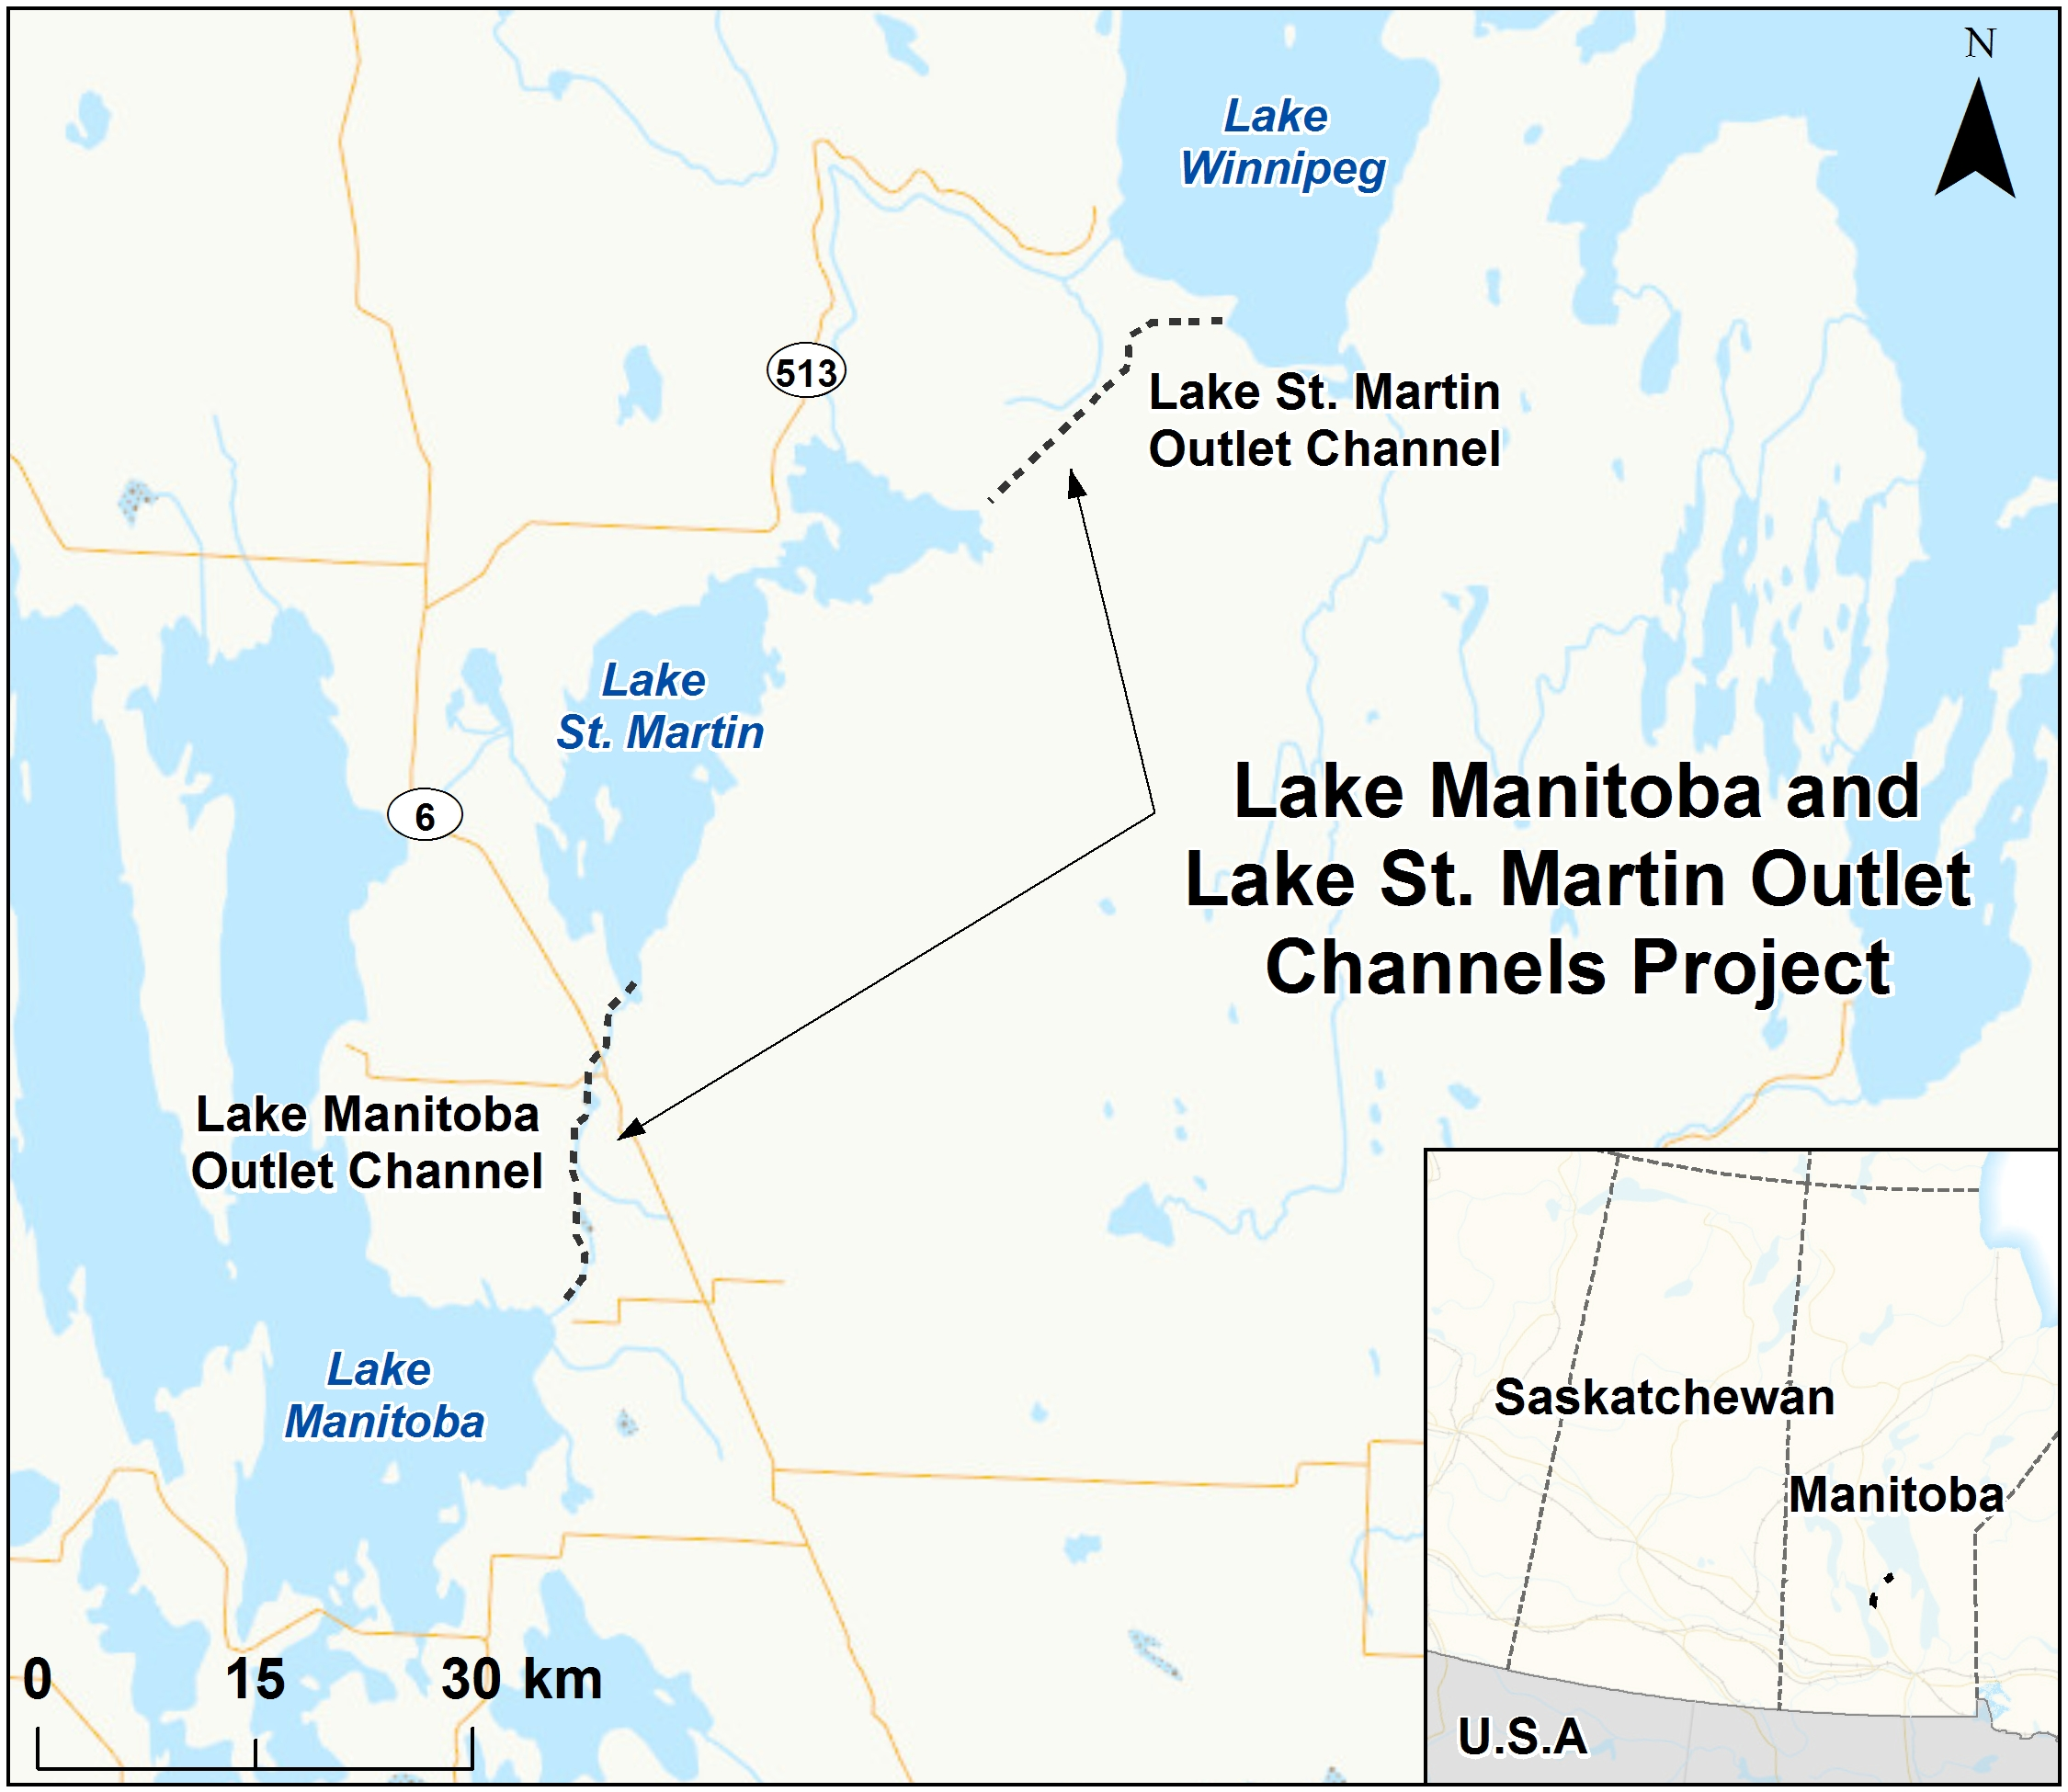 Lake Manitoba and Lake St. Martin Outlet Channels Project ...